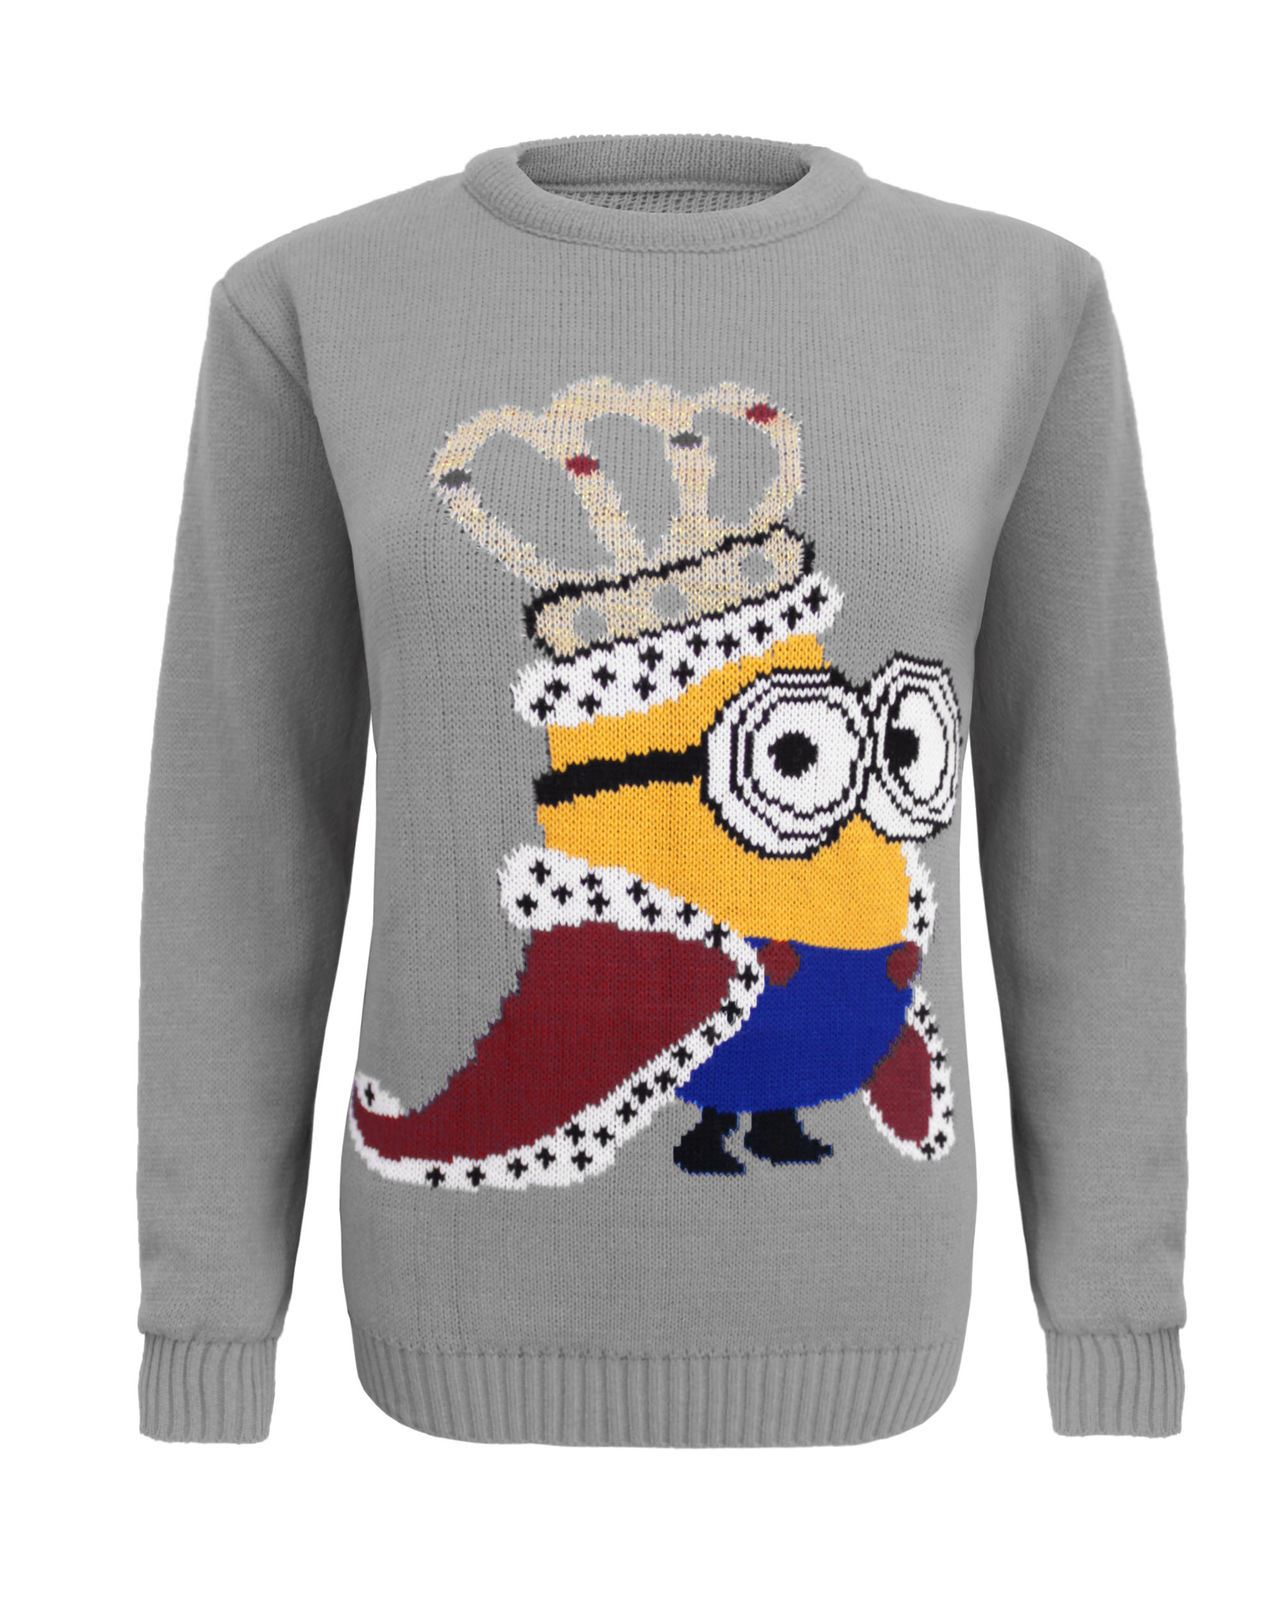 Knitting Pattern For Minion Jumper : KIDS GIRLS KNITTED KING CROWN MINION CHRISTMAS XMAS JUMPER ...